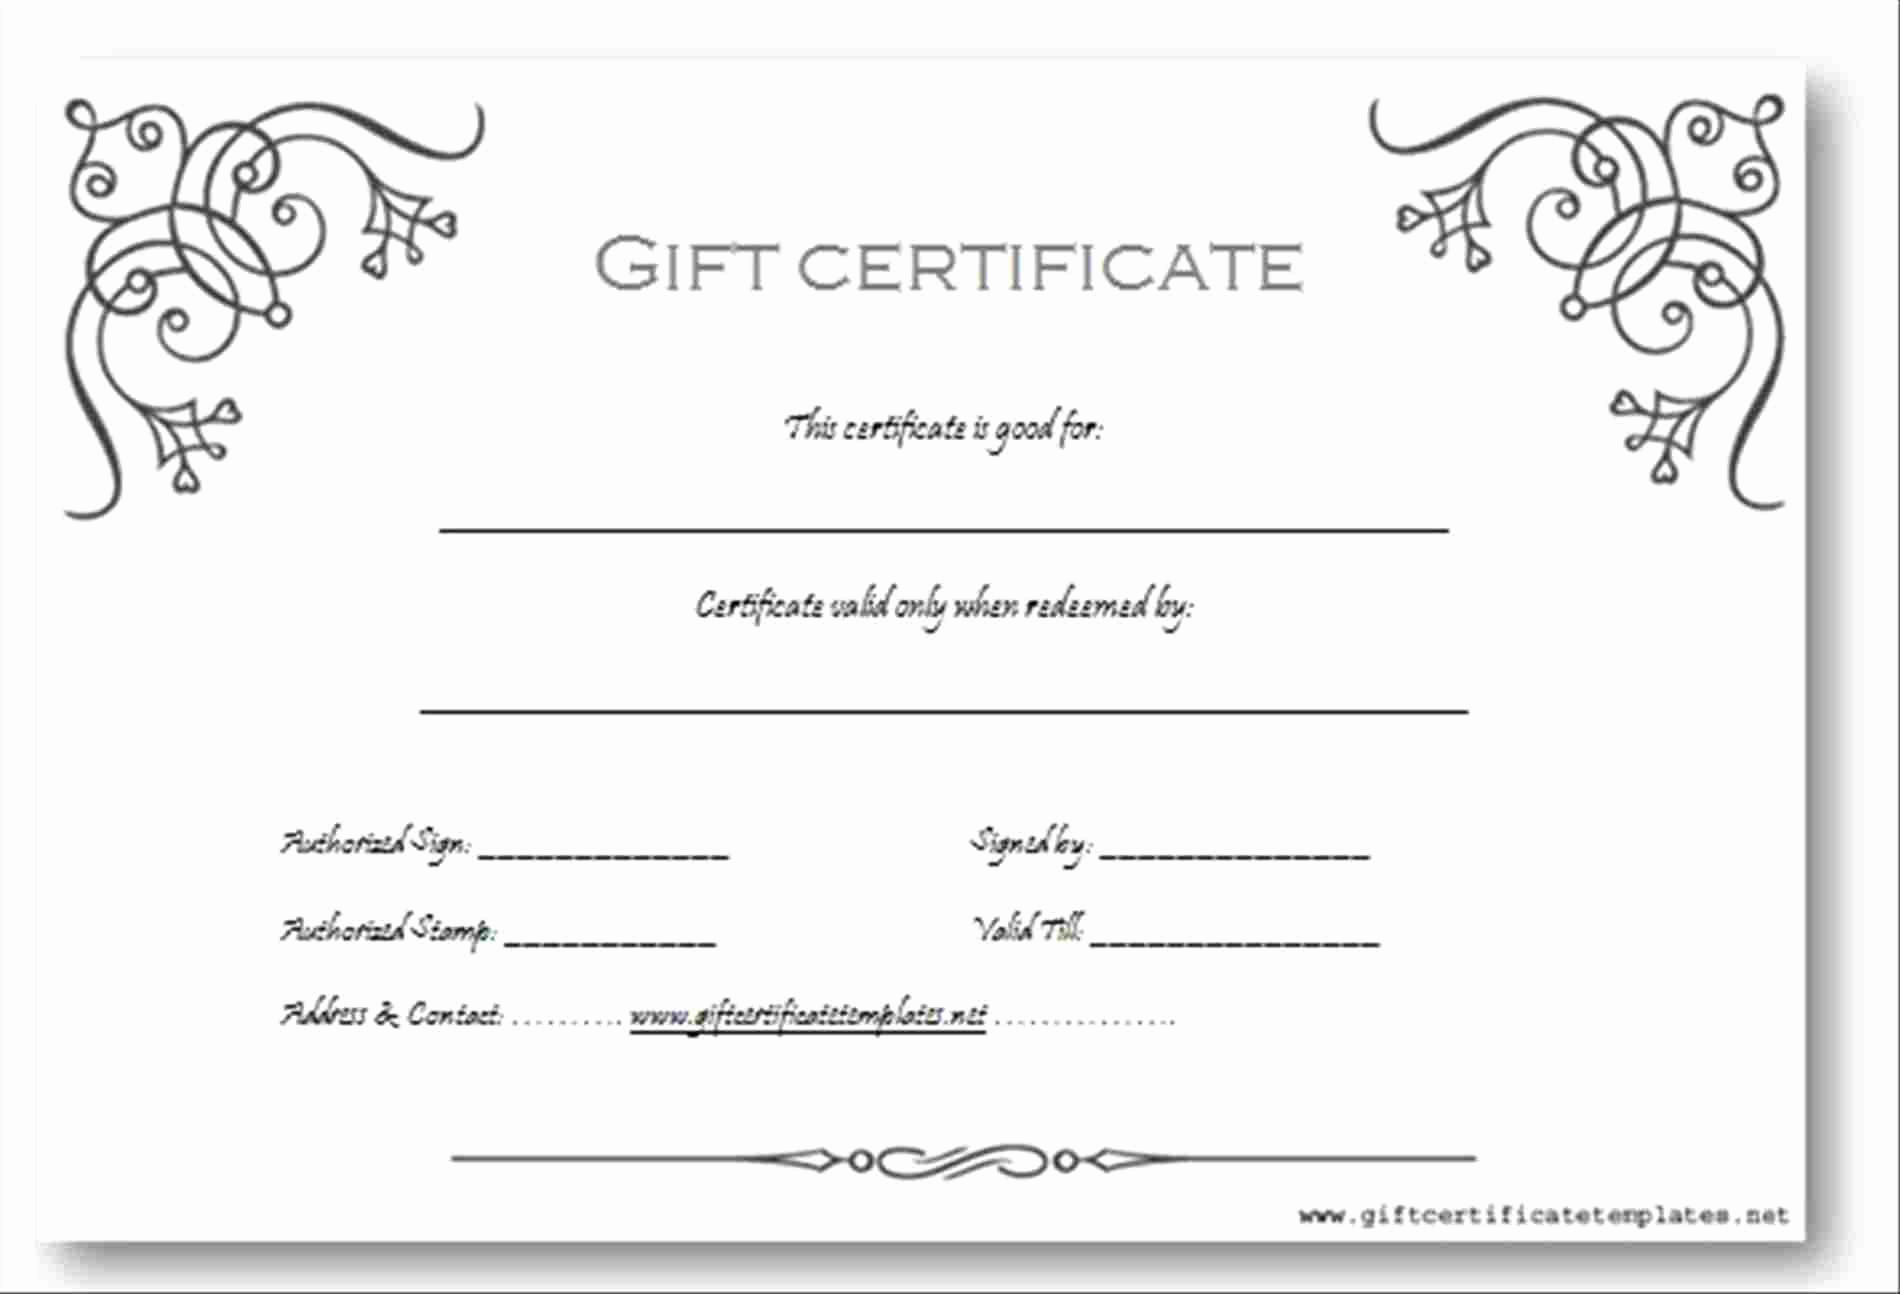 Free Gift Certificate Template Word New Gift Voucher Templates Word Pics – Travel Voucher T